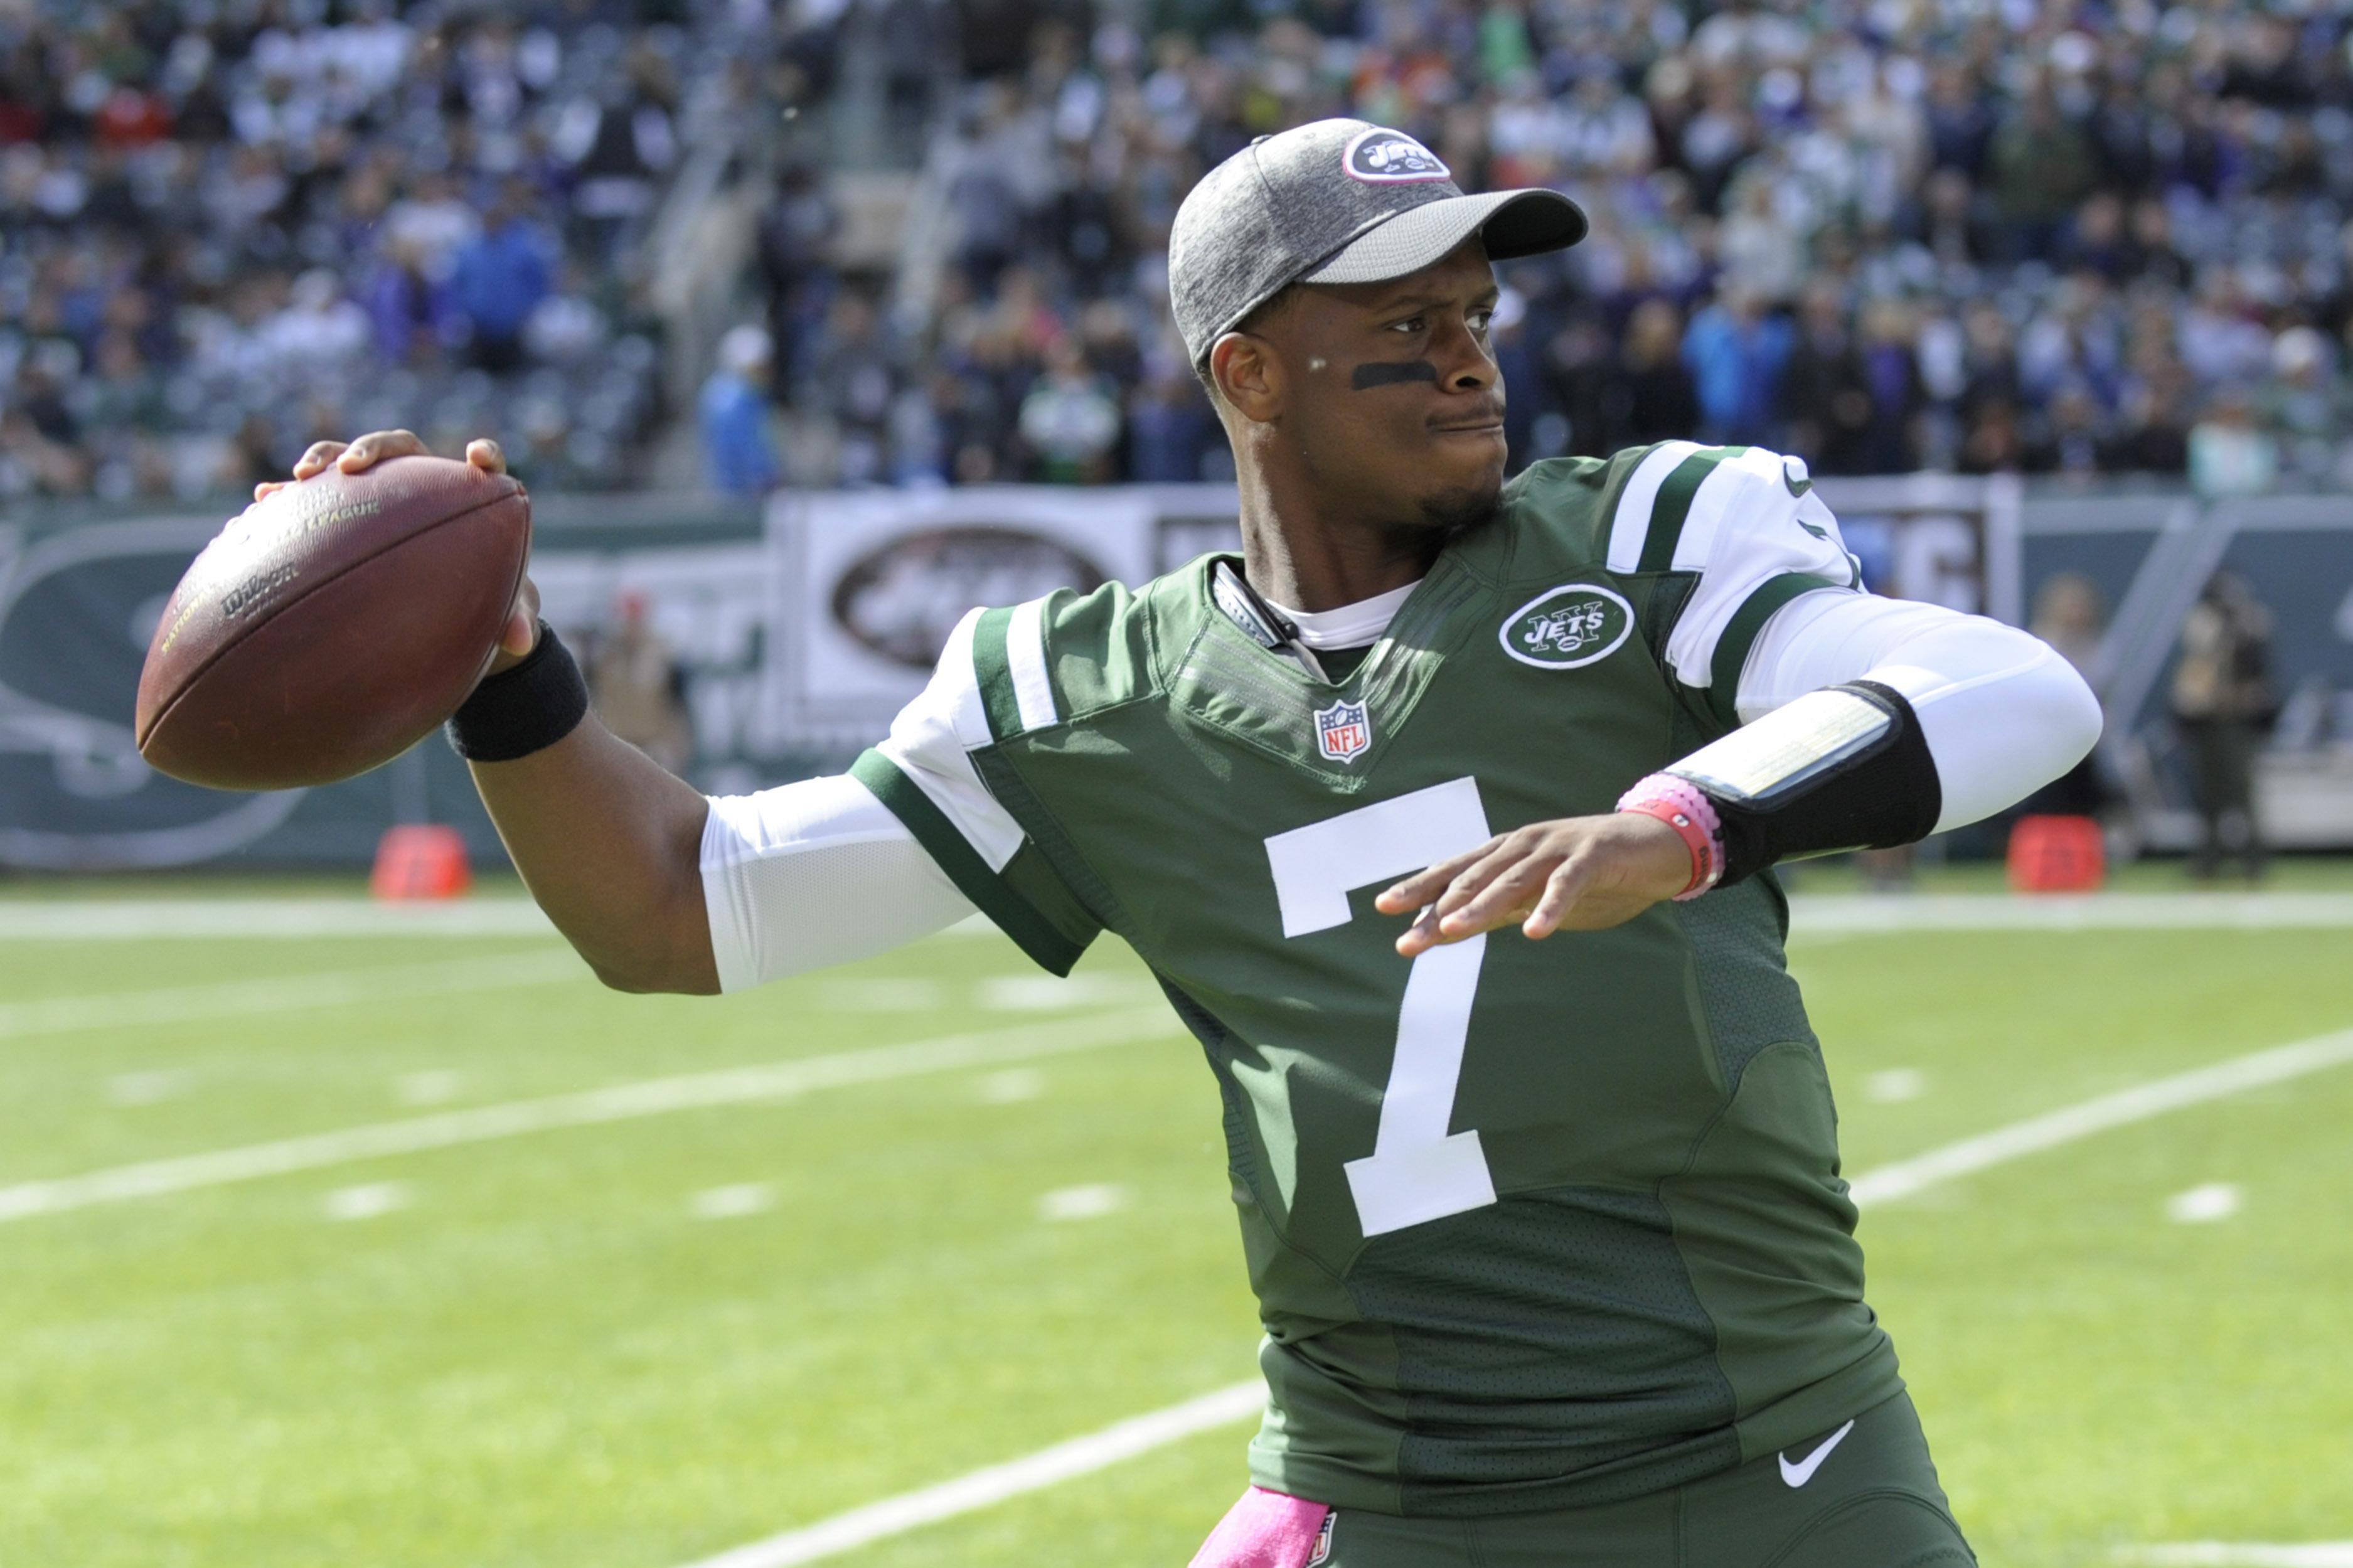 df9effc7db1 Seahawks expected to sign quarterback Geno Smith | The Spokesman-Review